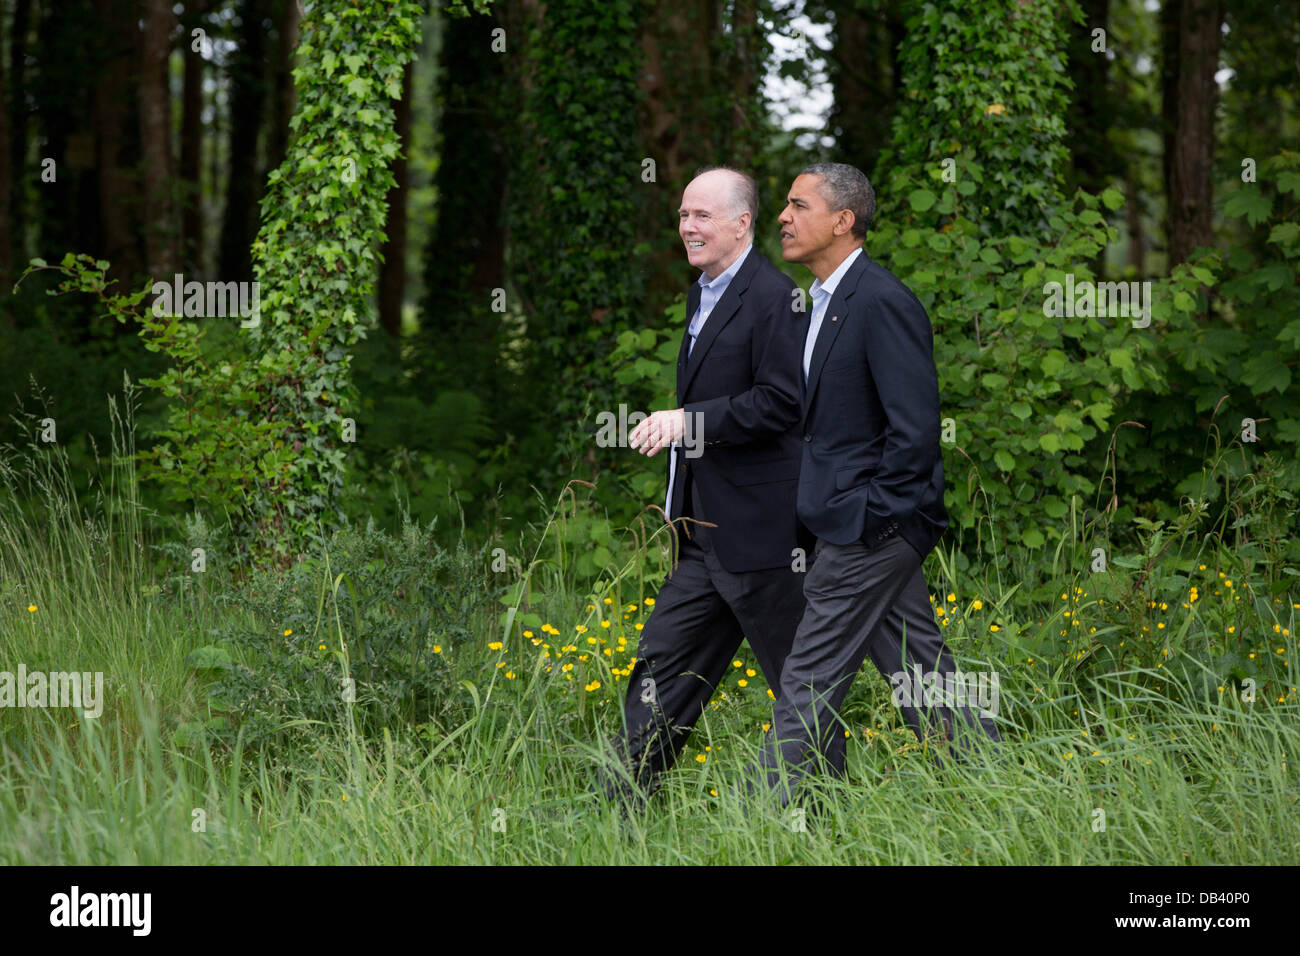 President Barack Obama walks with National Security Advisor Tom Donilon on the grounds of Lough Erne Resort at the - Stock Image